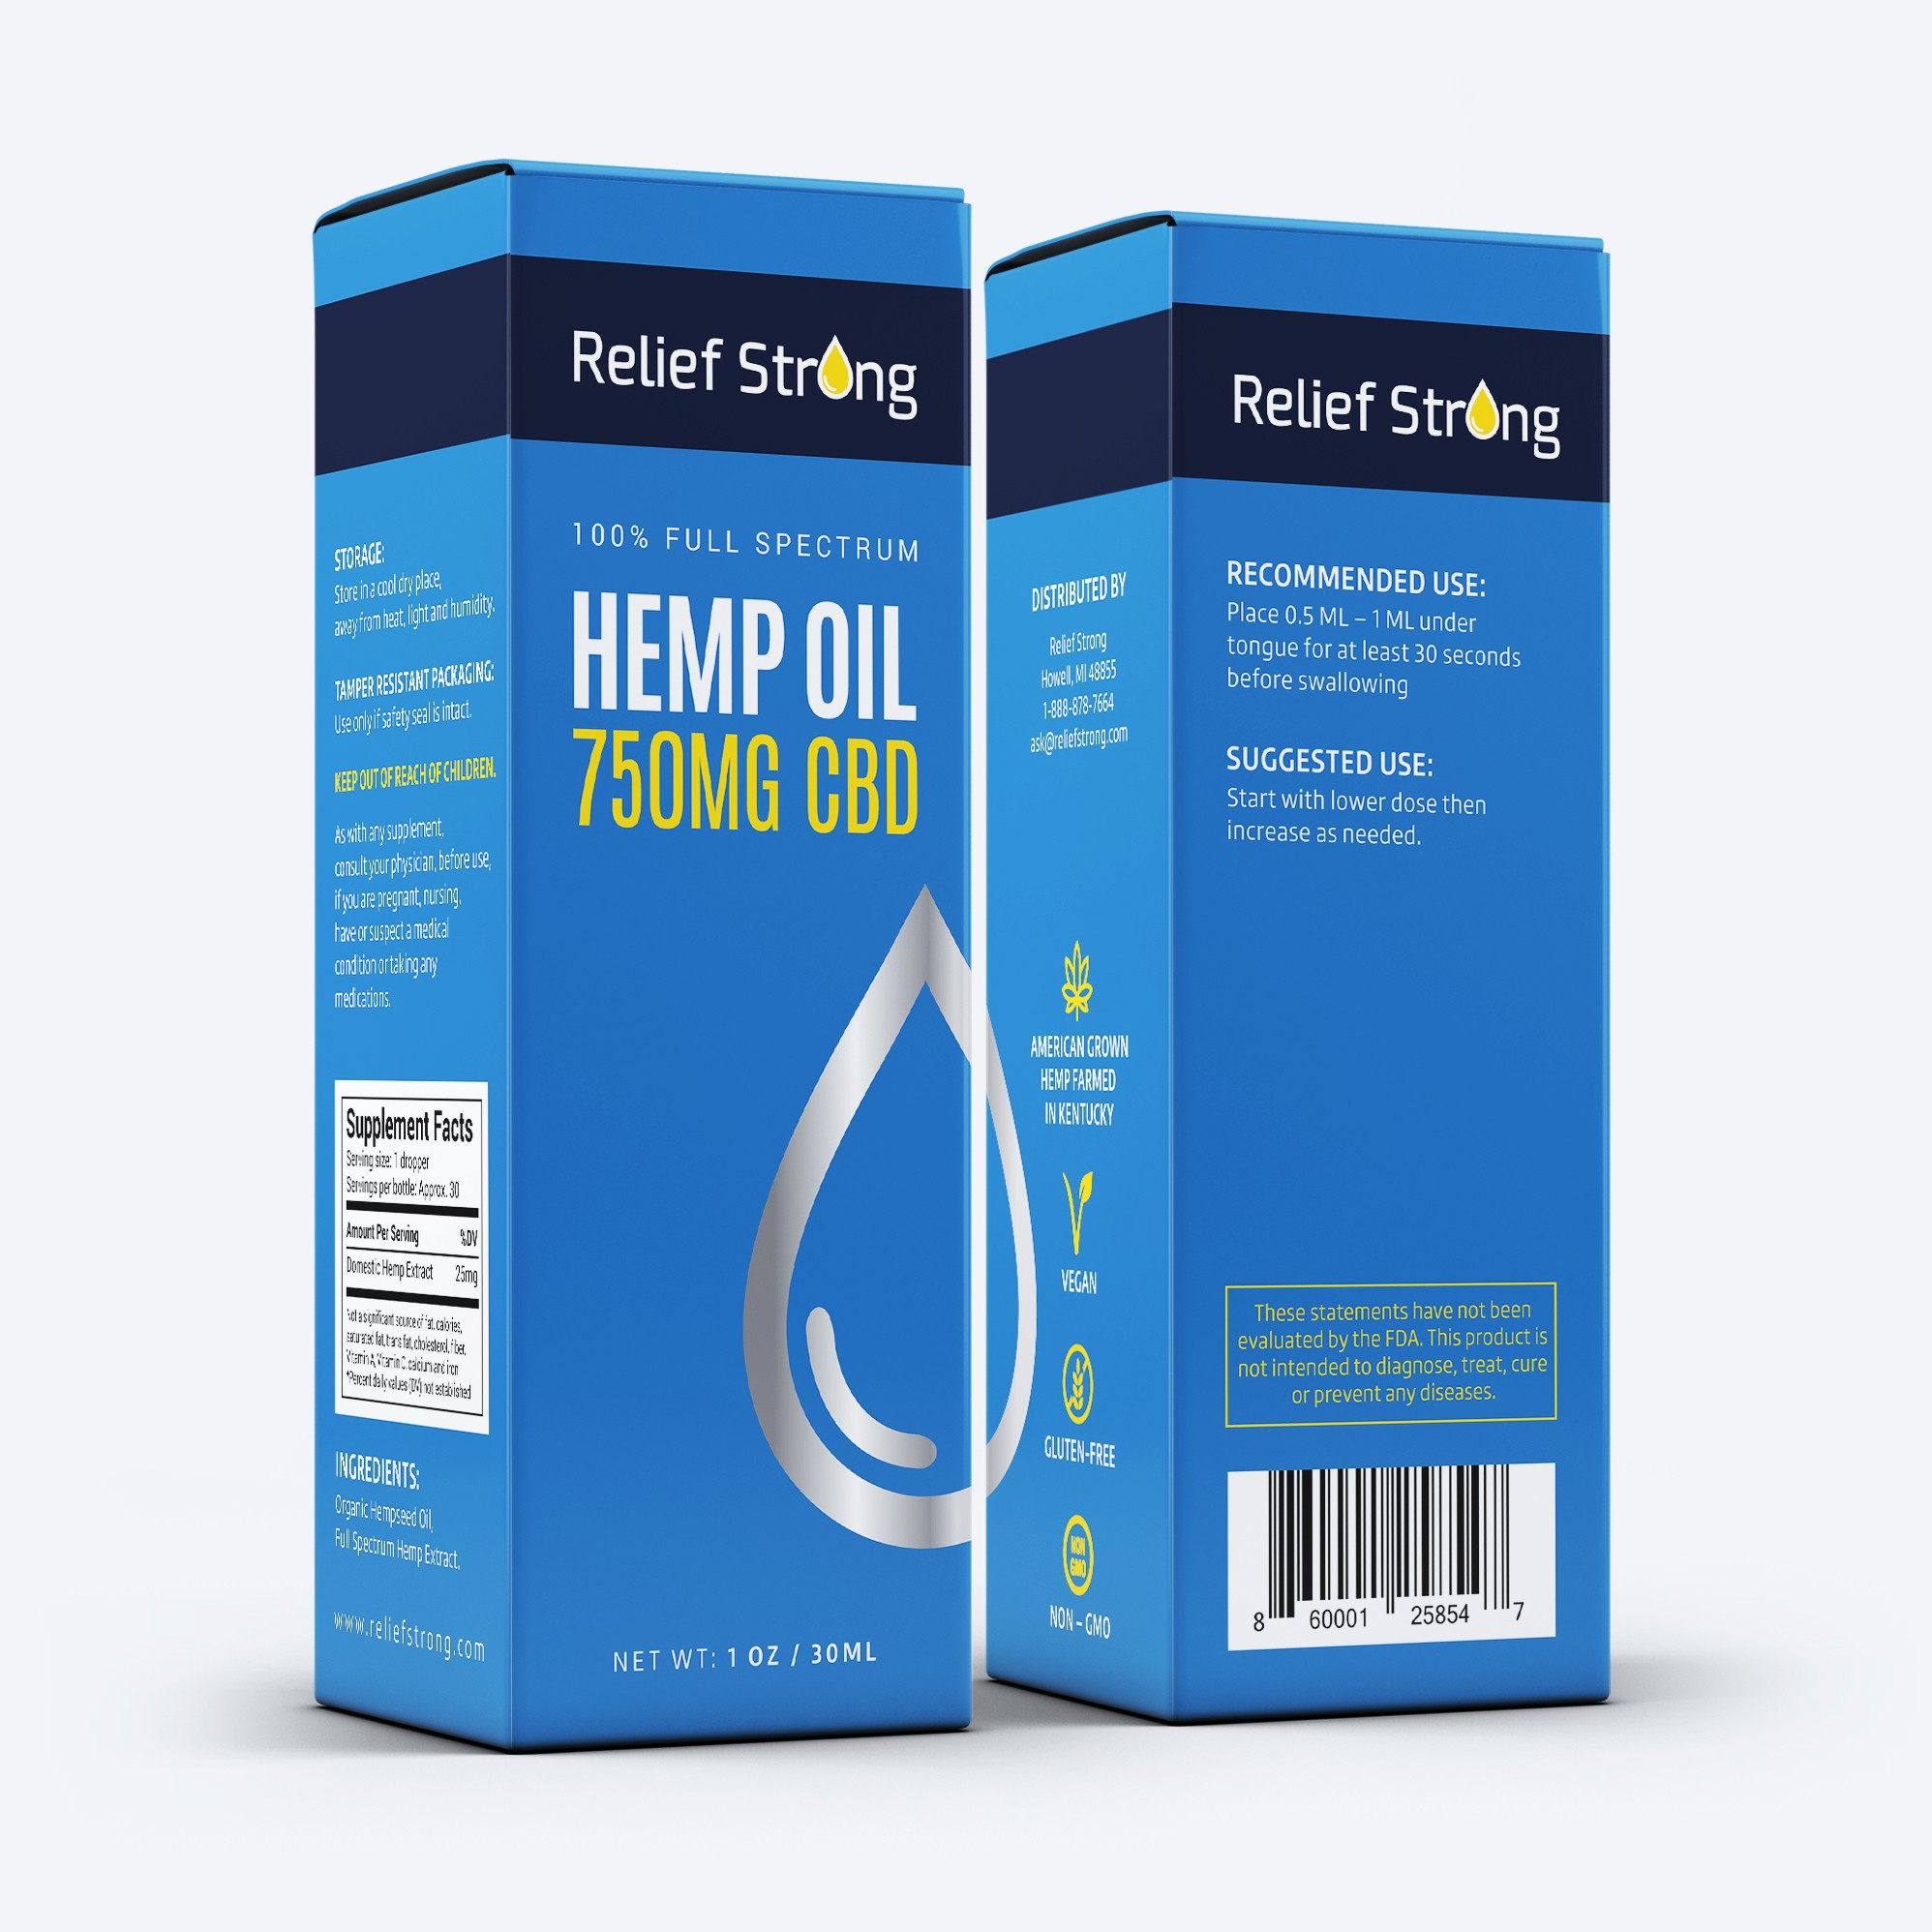 Relief Strong Box and Corresponding Label